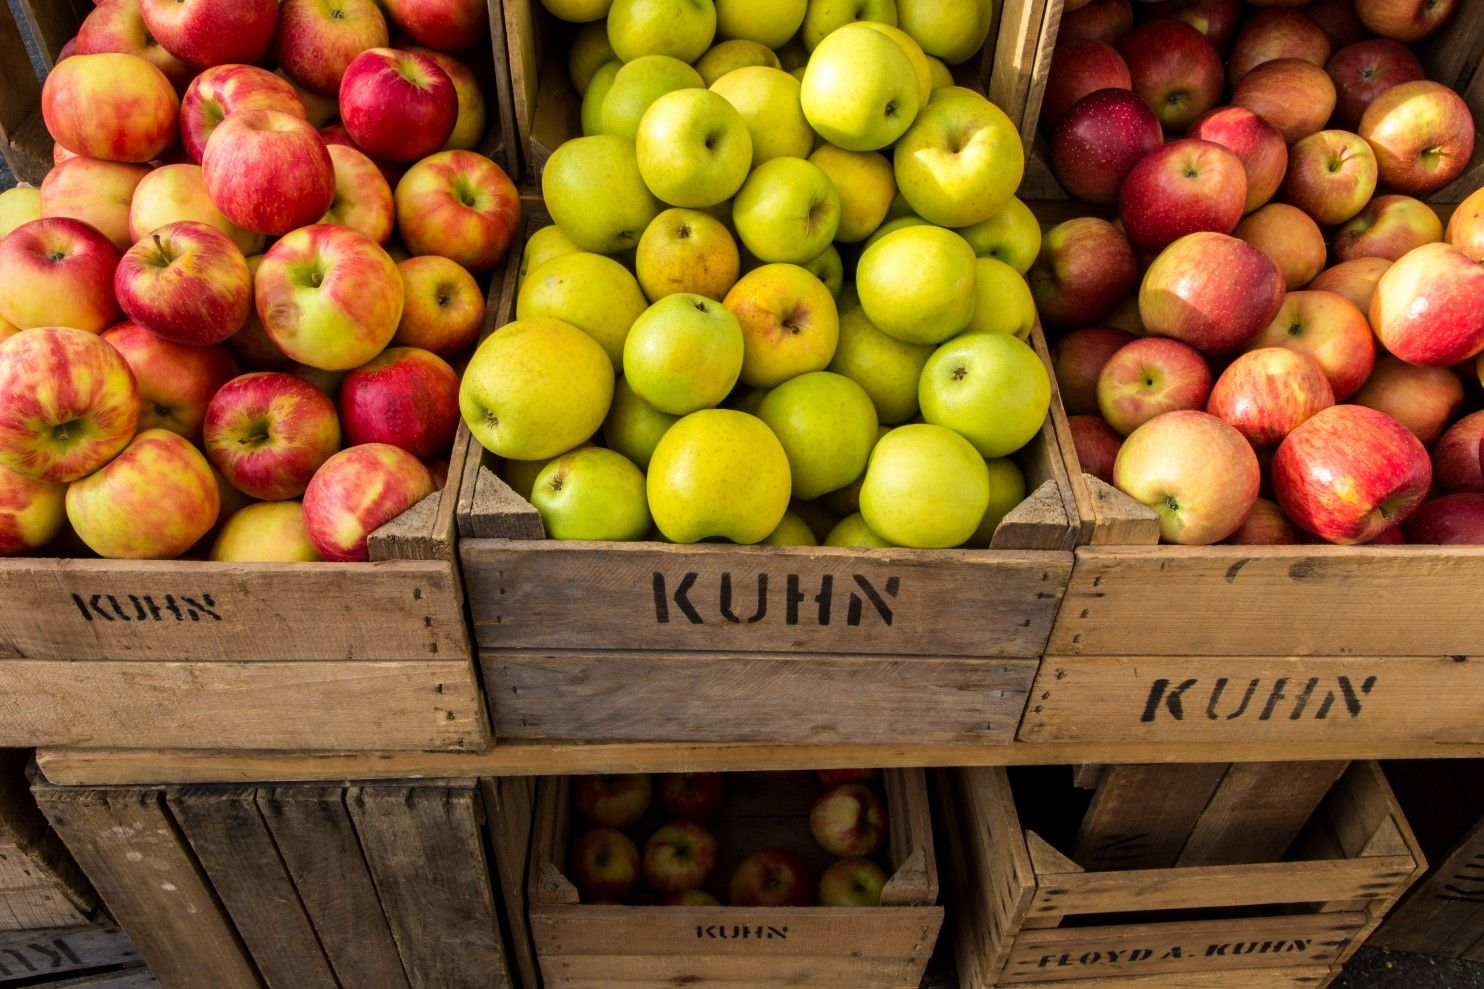 USDA approves genetically modified apples, S&P sets market record - The Washington Post